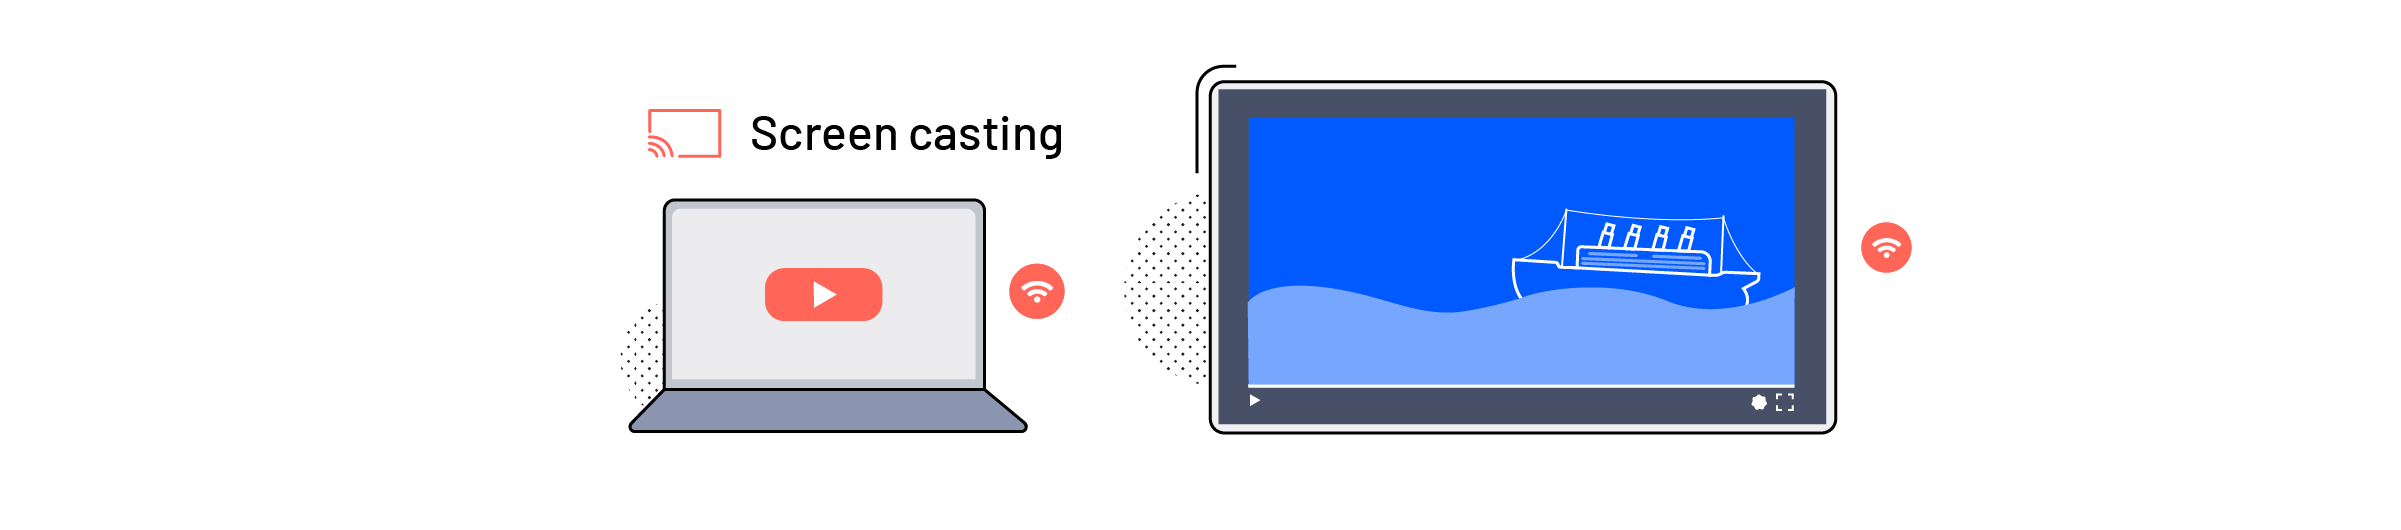 A laptop screencasting to a screen for screen sharing